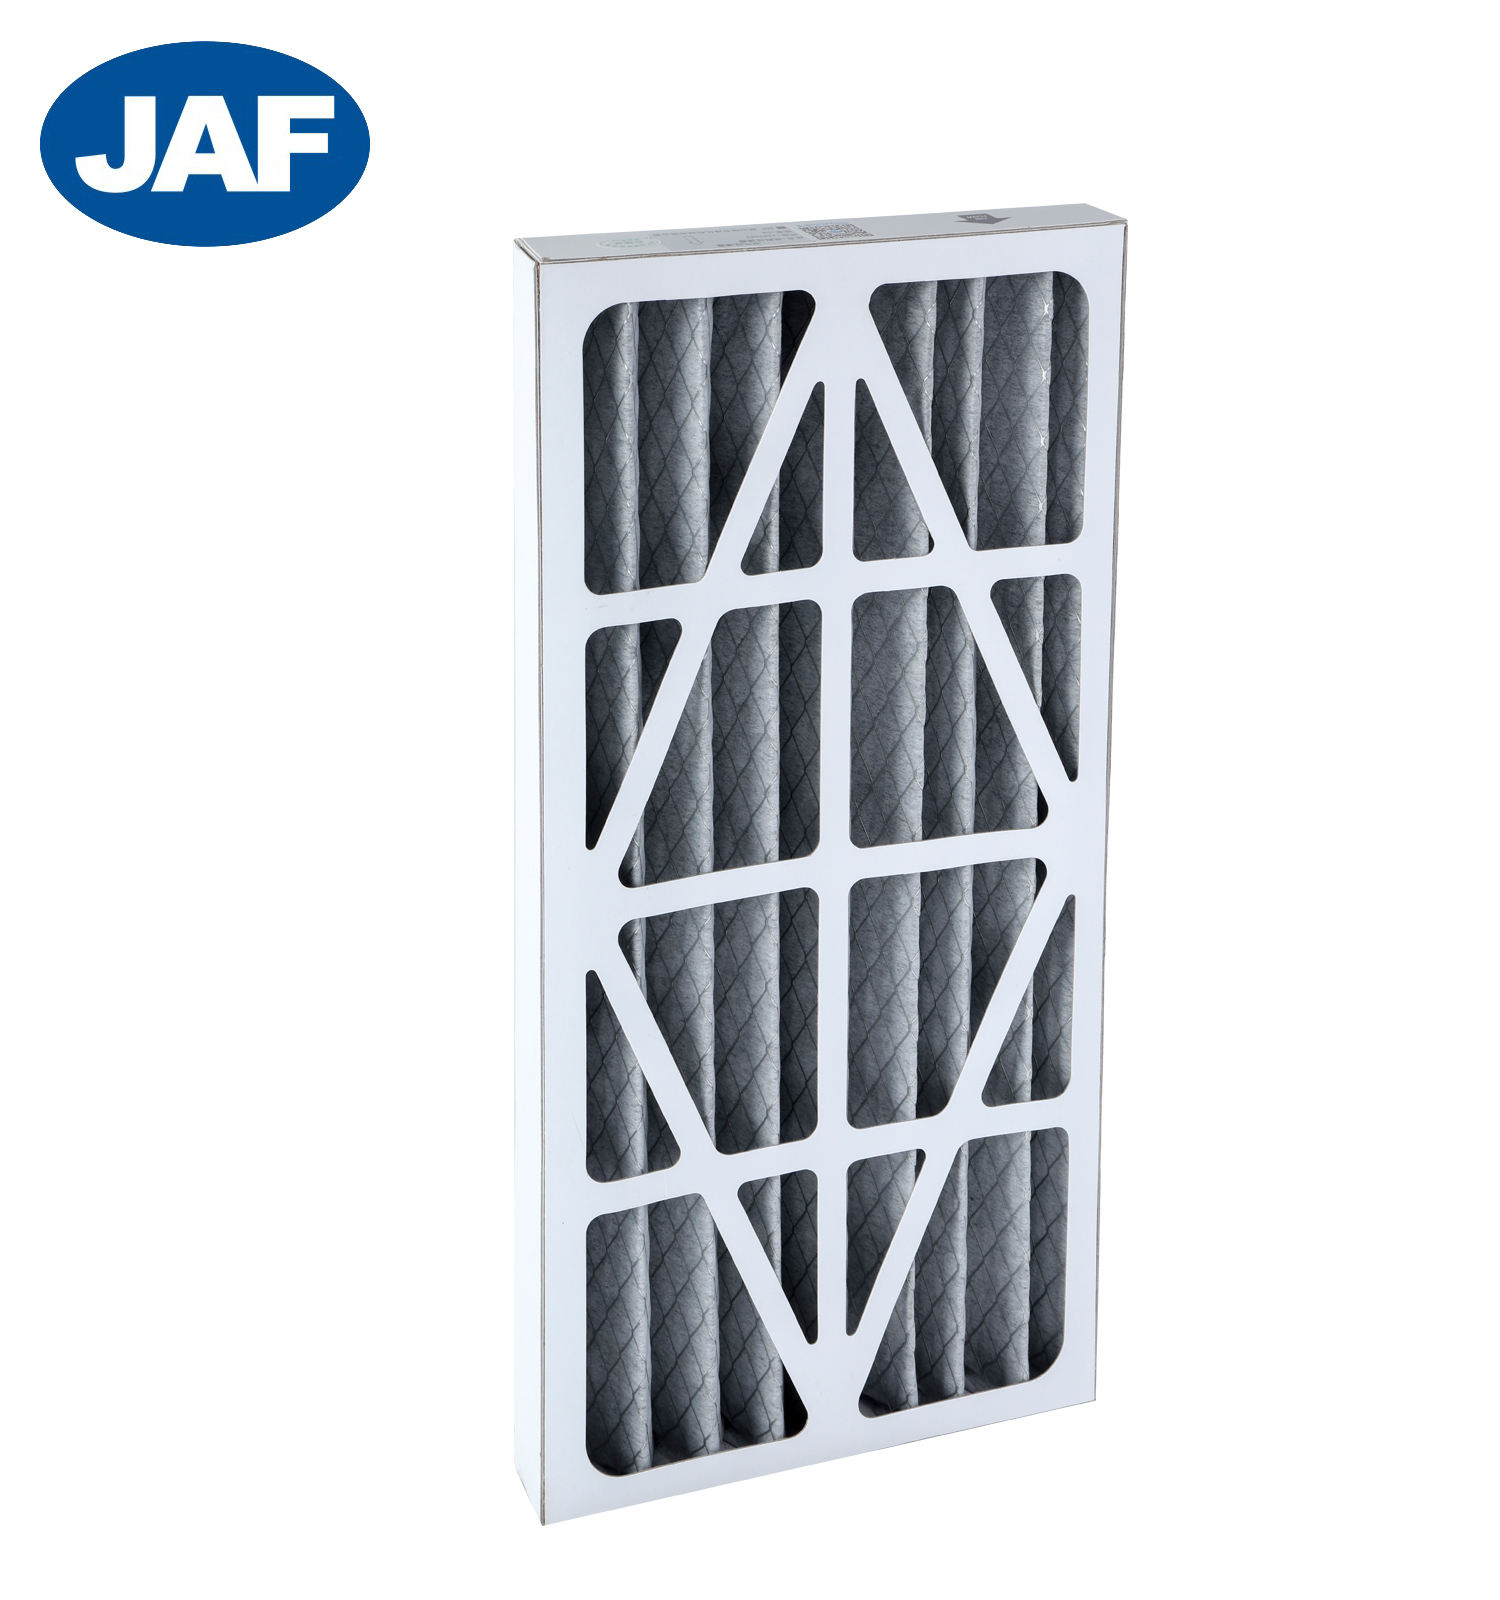 G4 Folding Pleated Air Flow Panel Air Filter Primary Efficient Air Flow Paper Frame